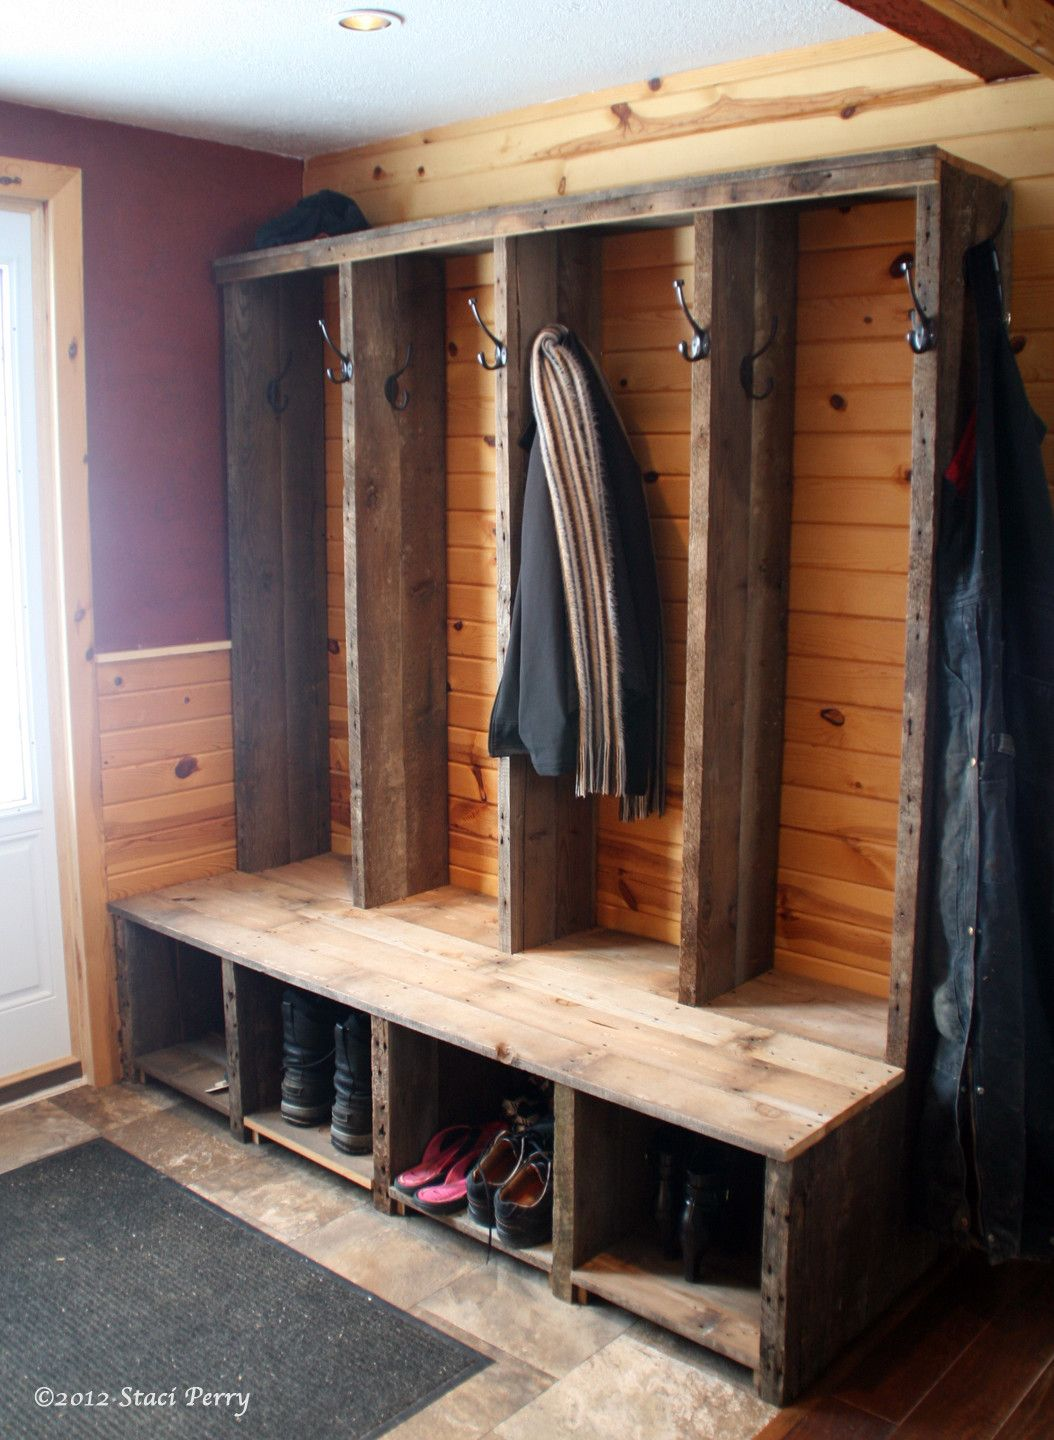 Rustic Mudroom Shoe Storage Bench Coat Hooks Decoratorist 212867 In 2020 Rustic Entryway Bench Reclaimed Wood Benches Rustic Entryway